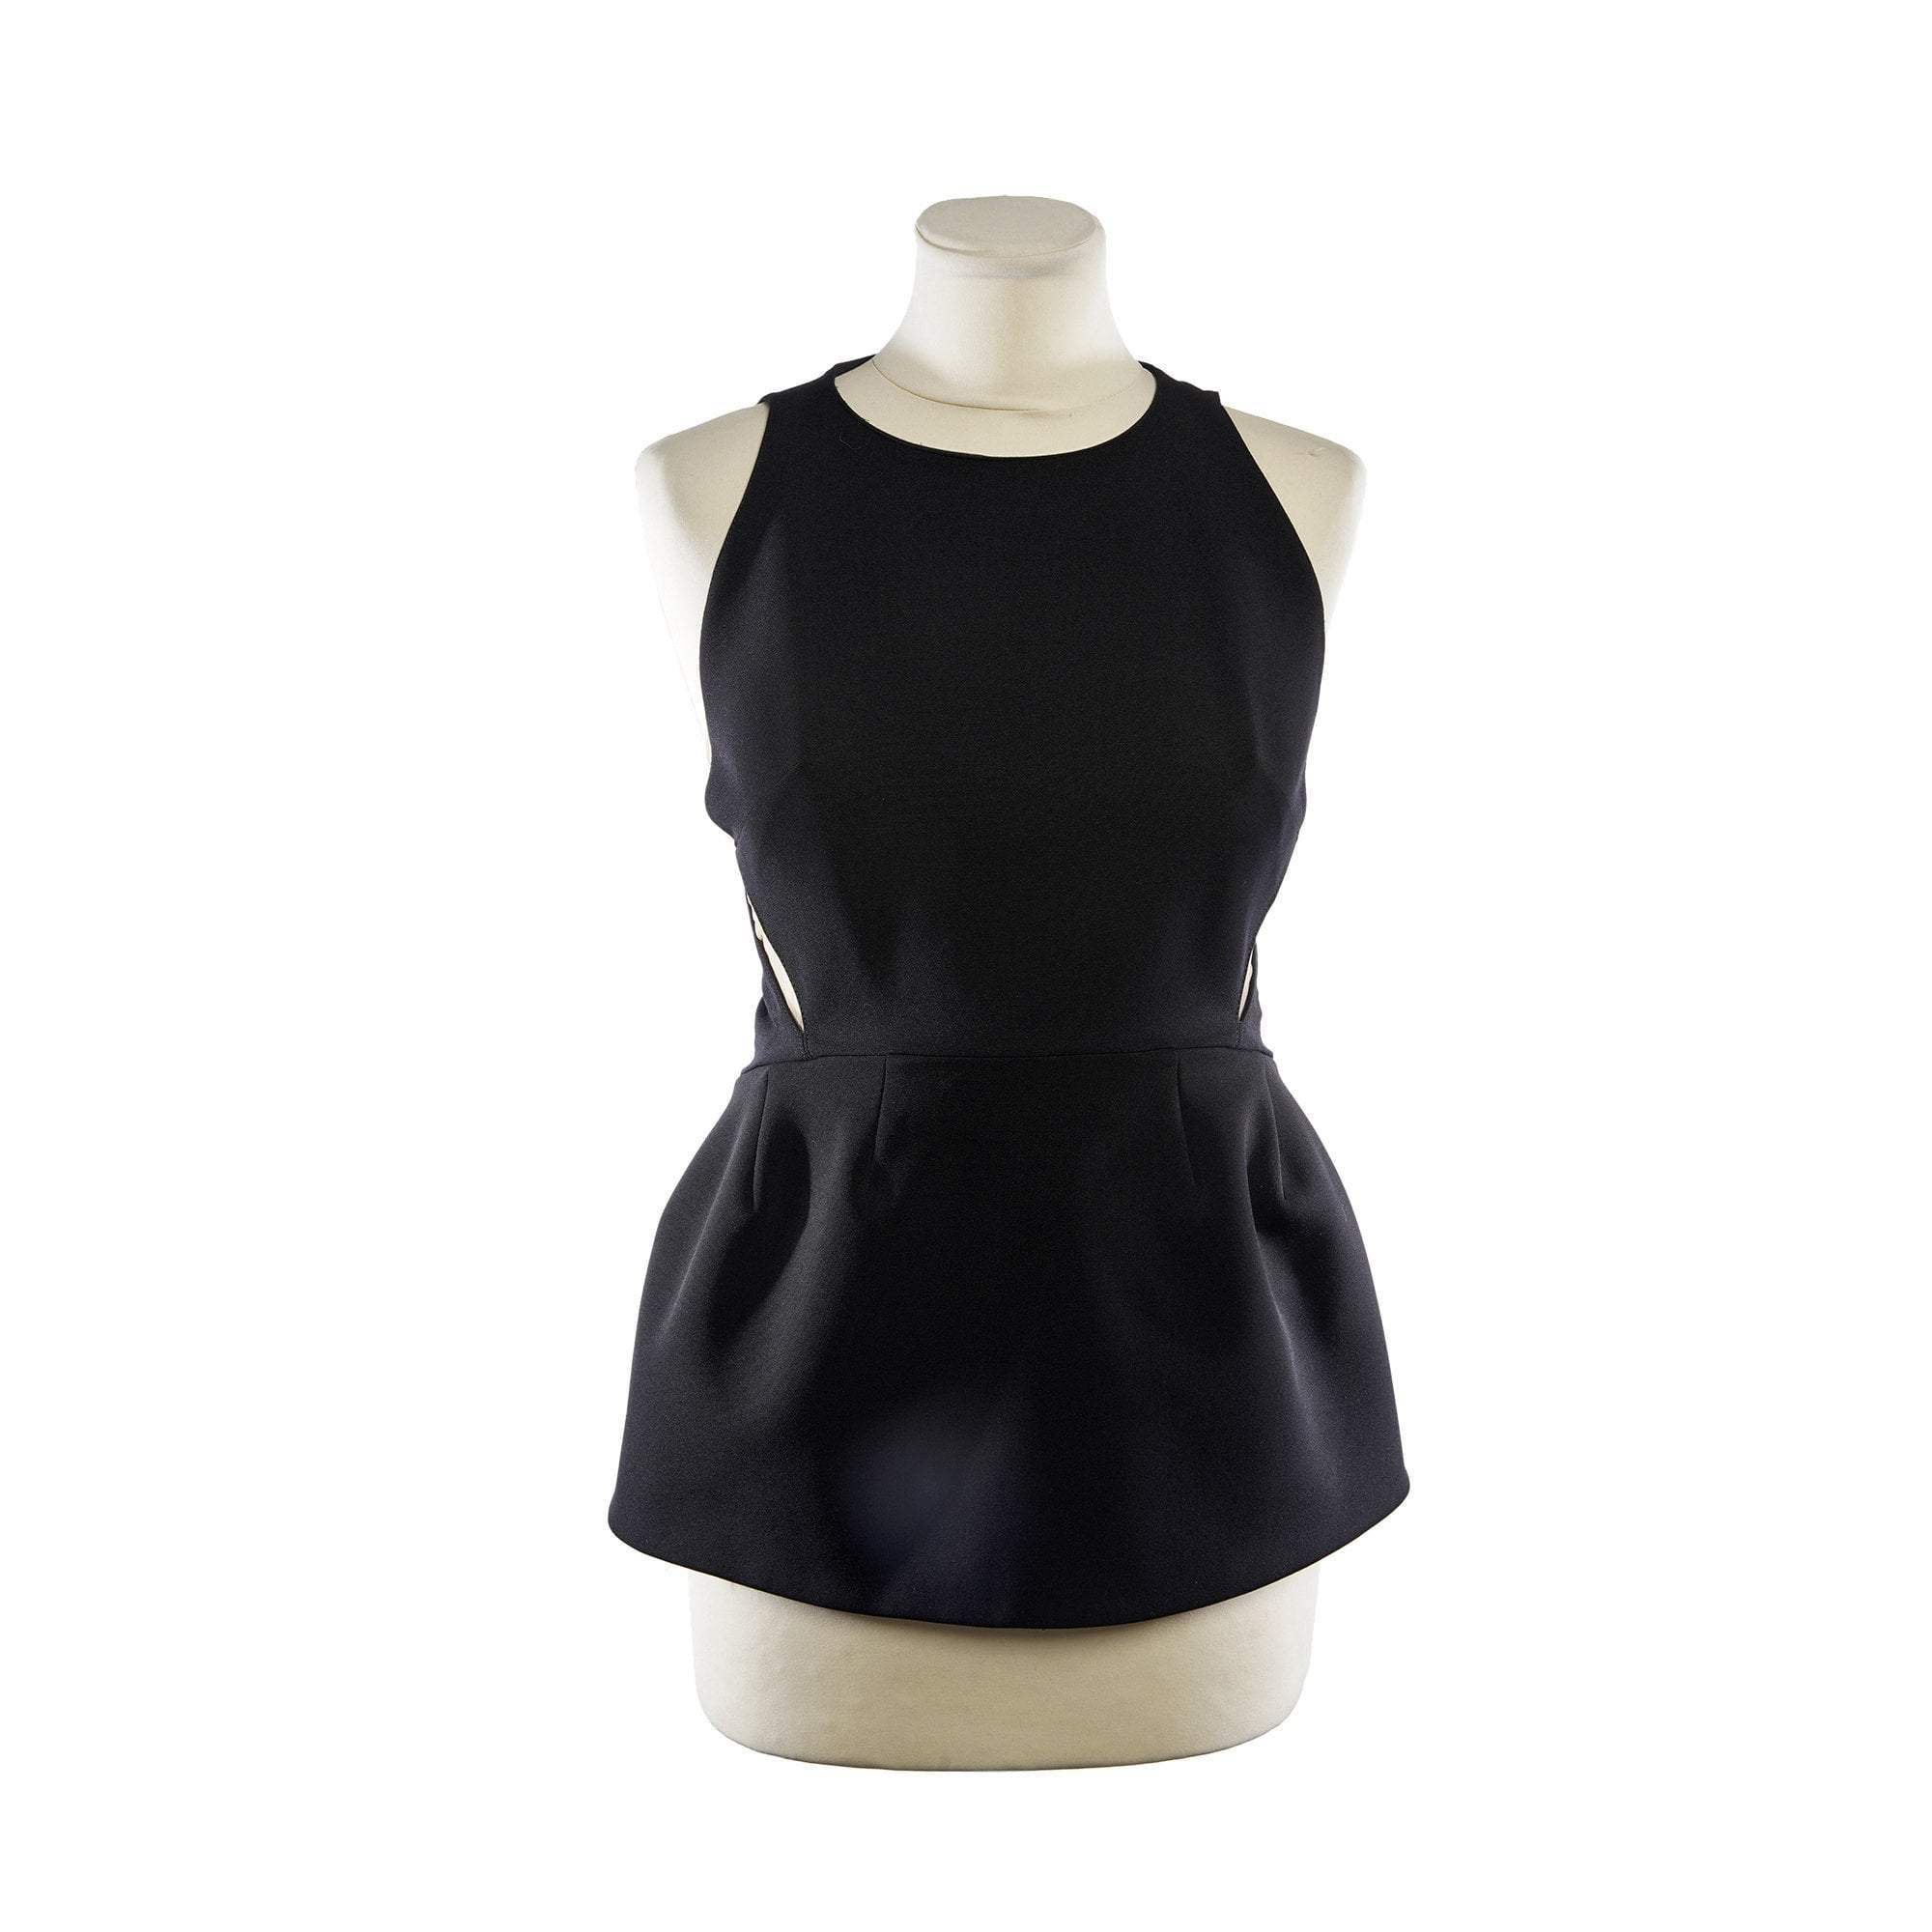 Stella McCartney Sleeveless Peplum Top